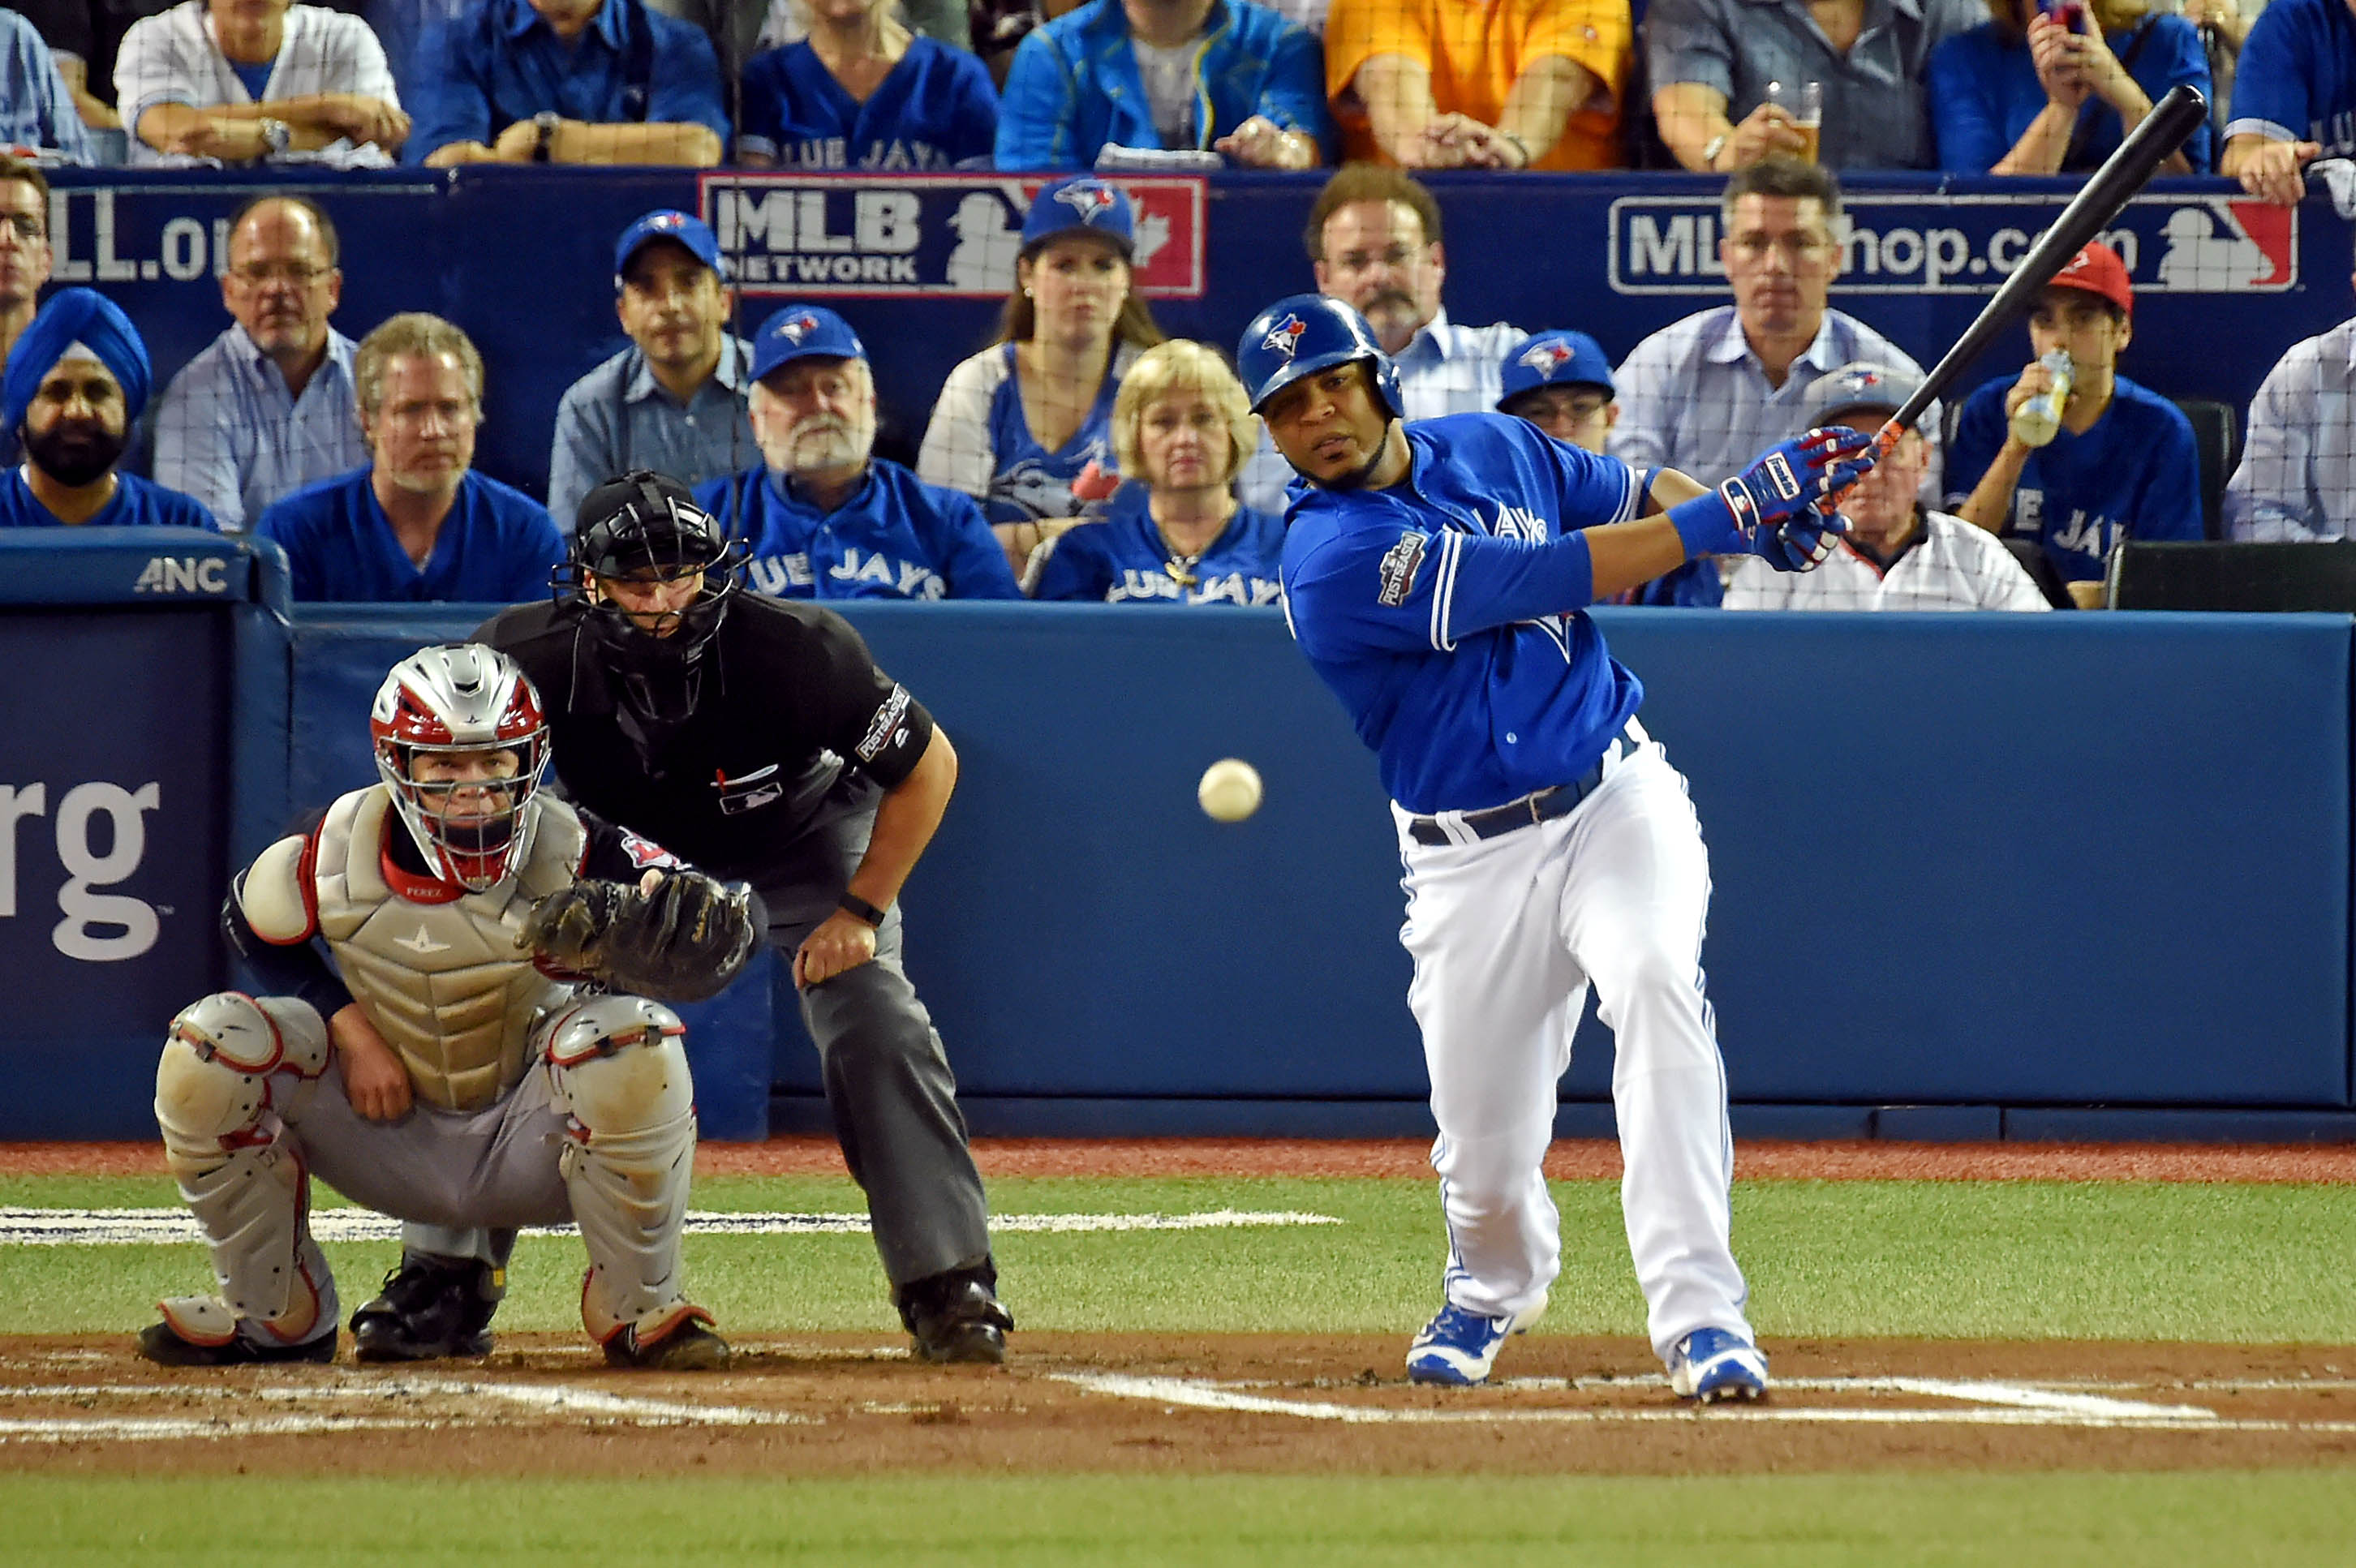 9616137-mlb-alcs-cleveland-indians-at-toronto-blue-jays